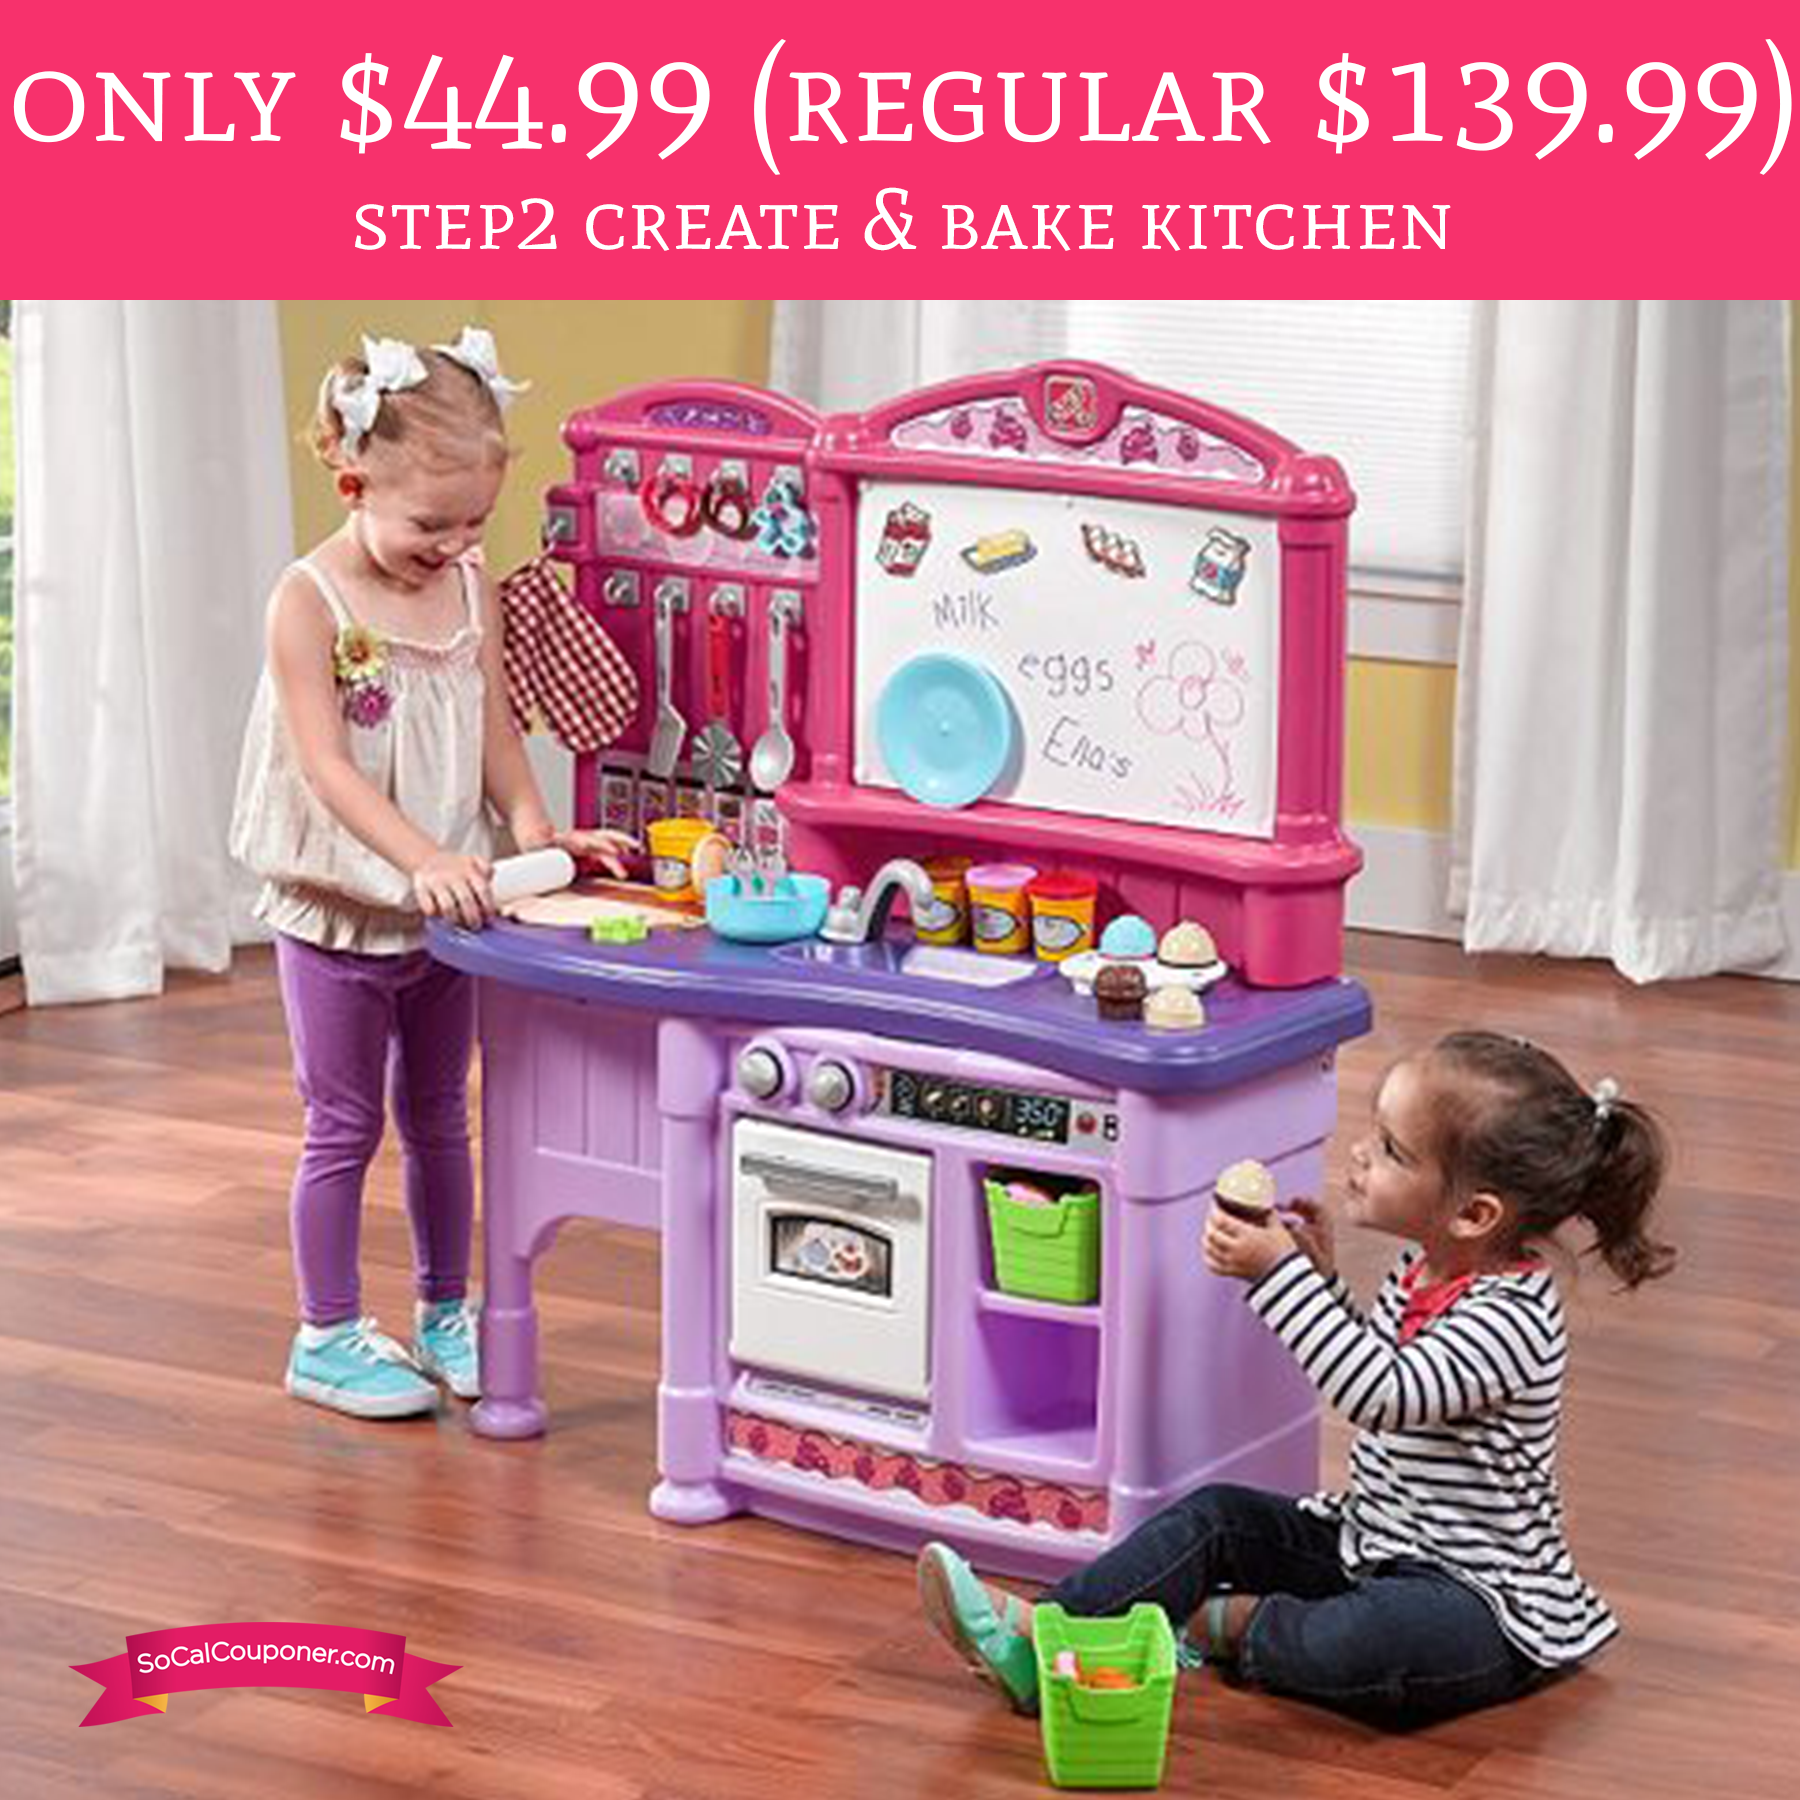 Only $44.99 (Regular $139.99) Step2 Create & Bake Kitchen ...